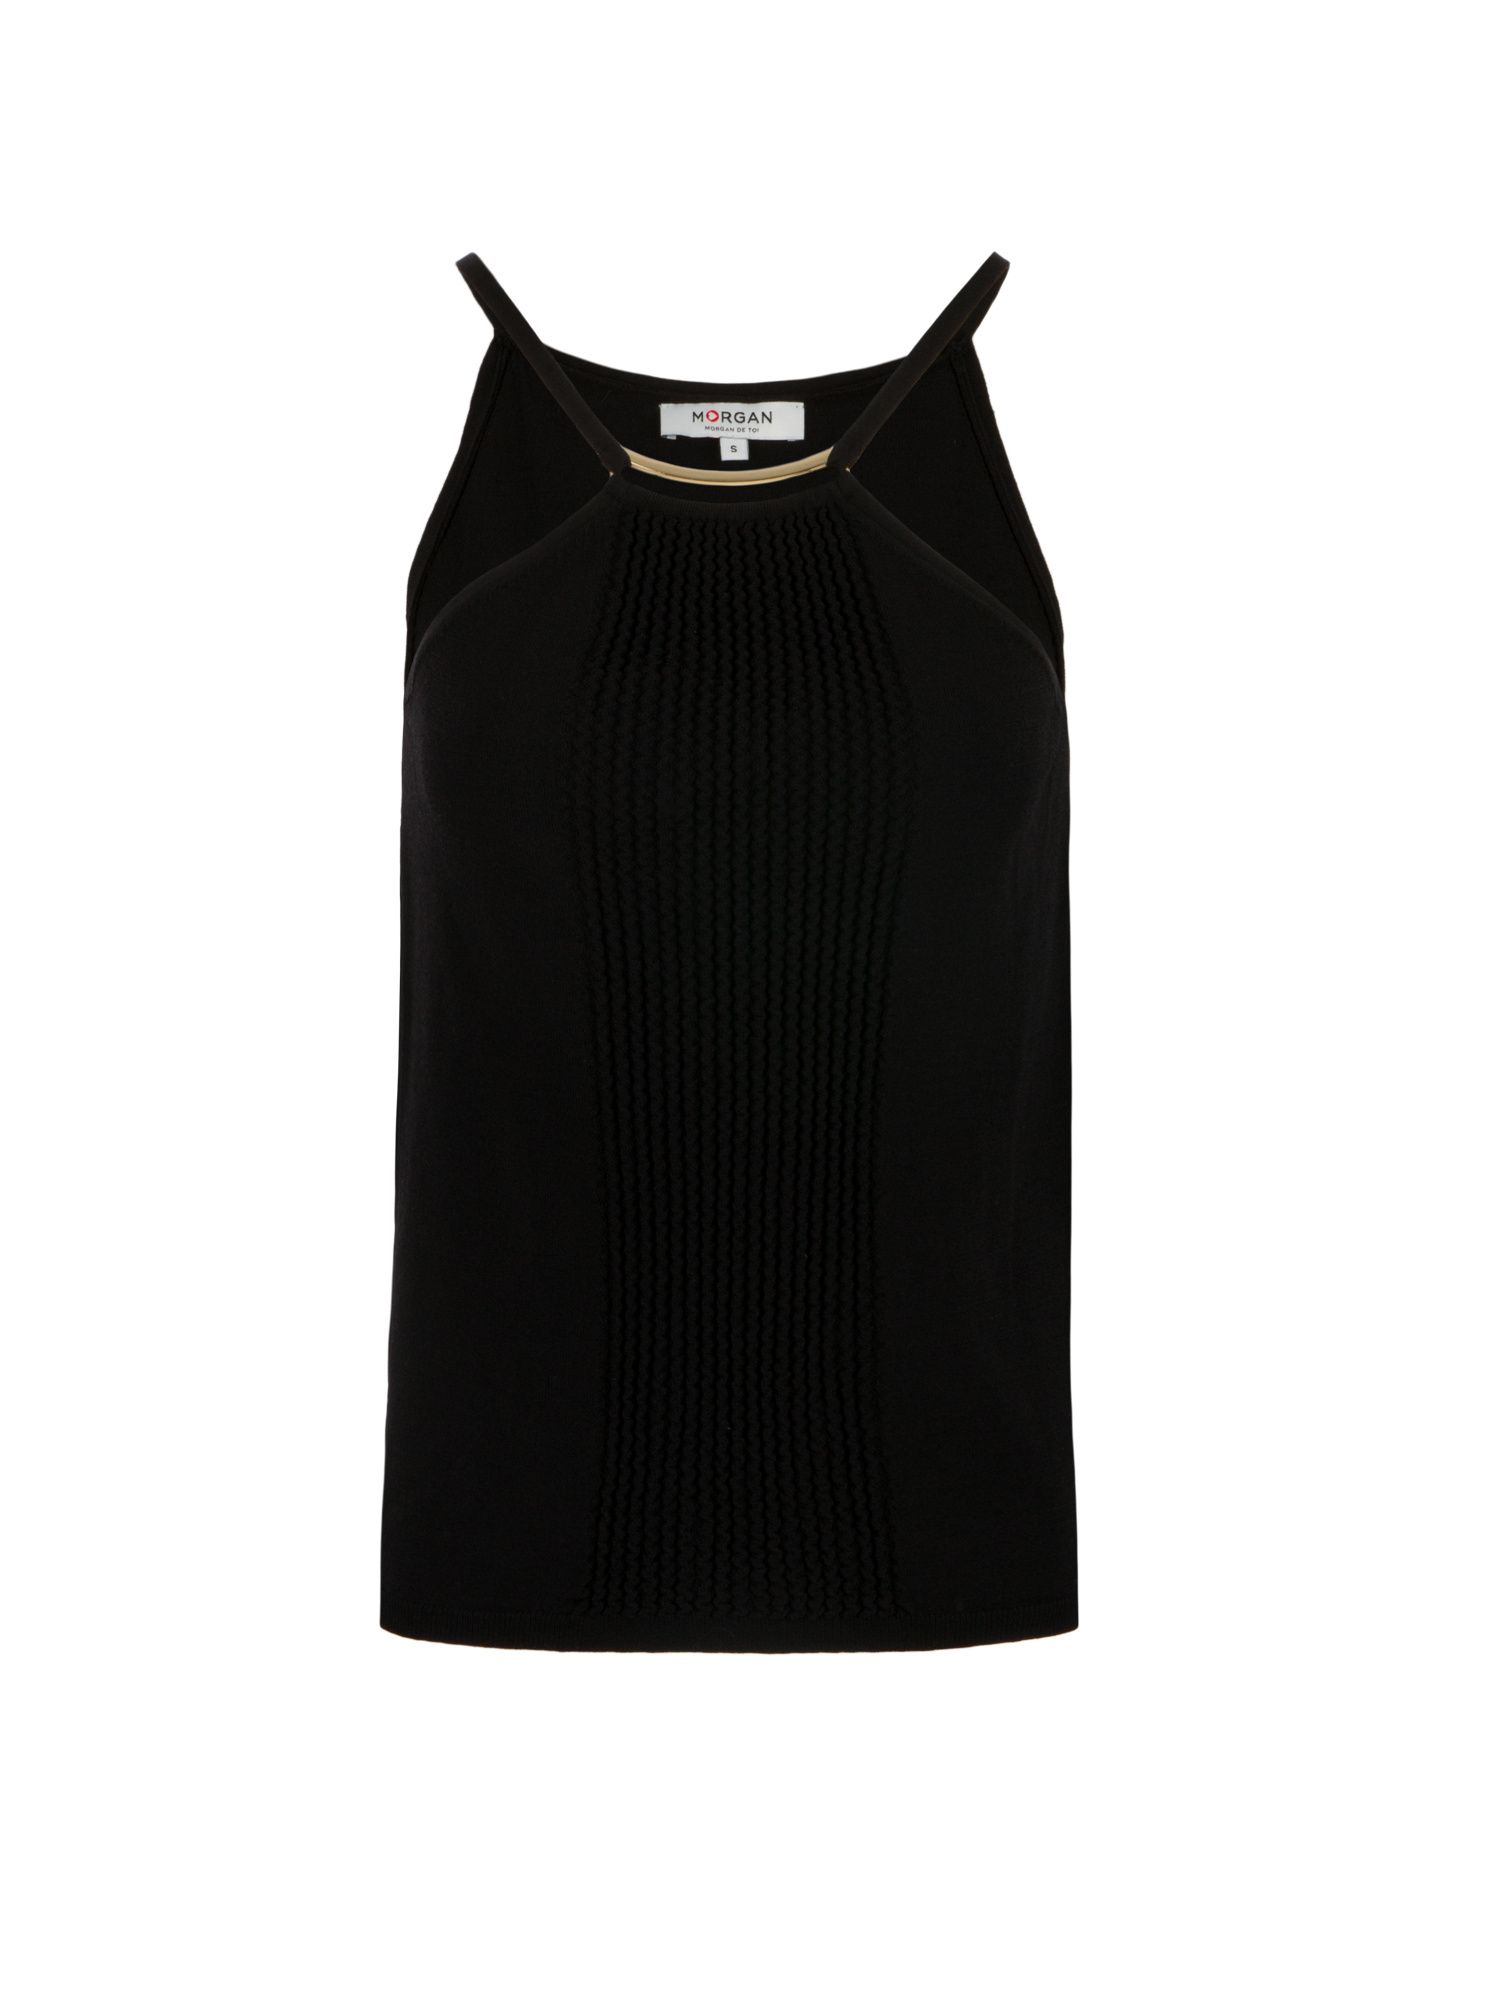 Morgan Embossed Knit Tank Top Black